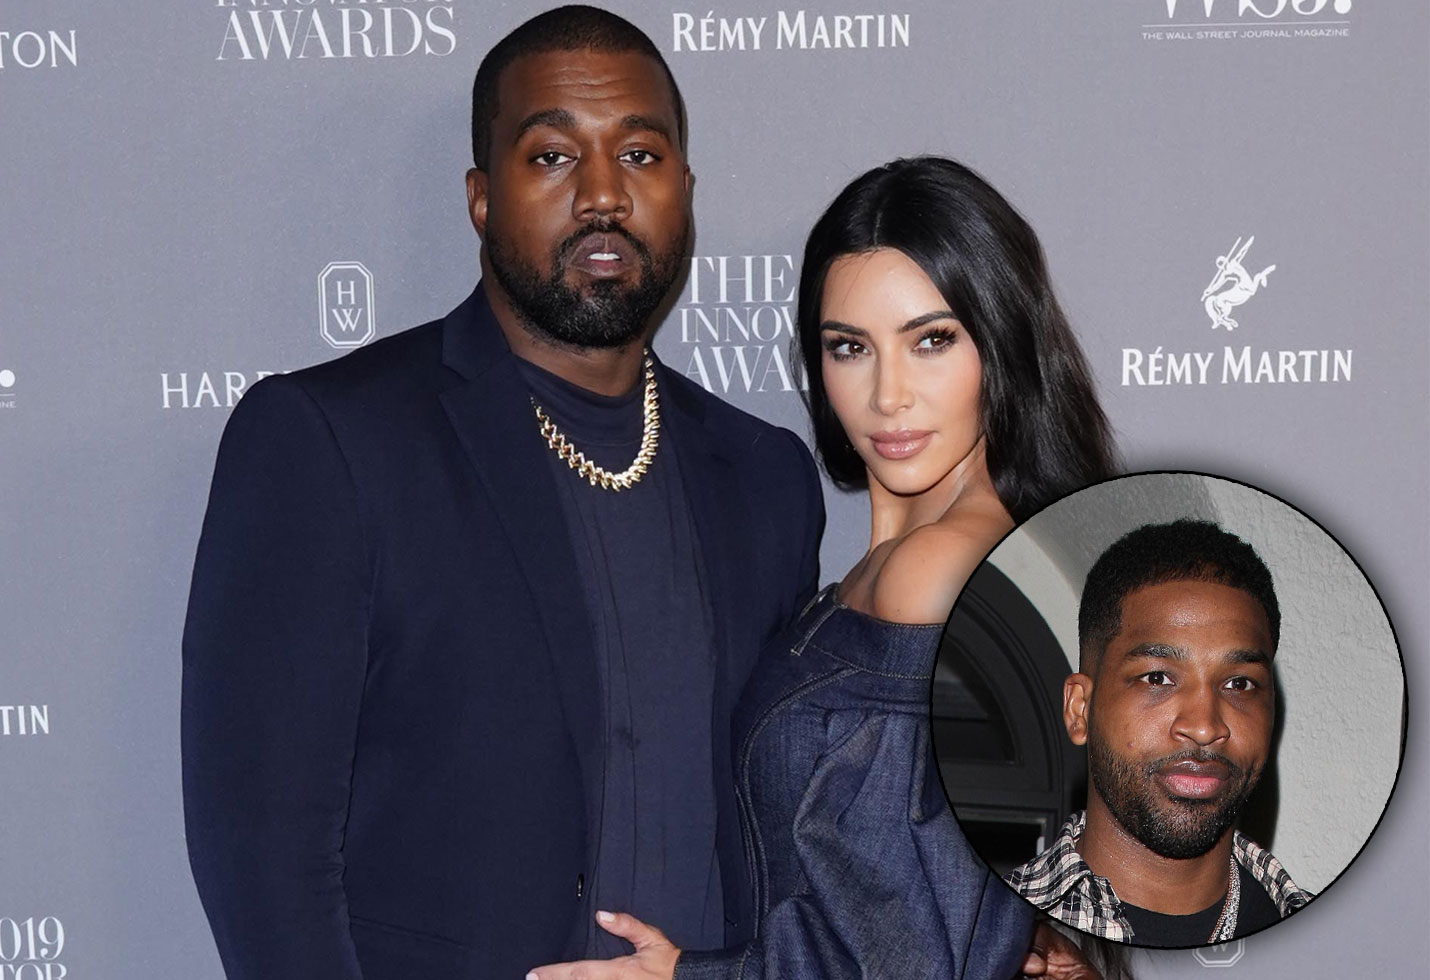 Kanye West and Kim Kardashian / Tristan Thompson